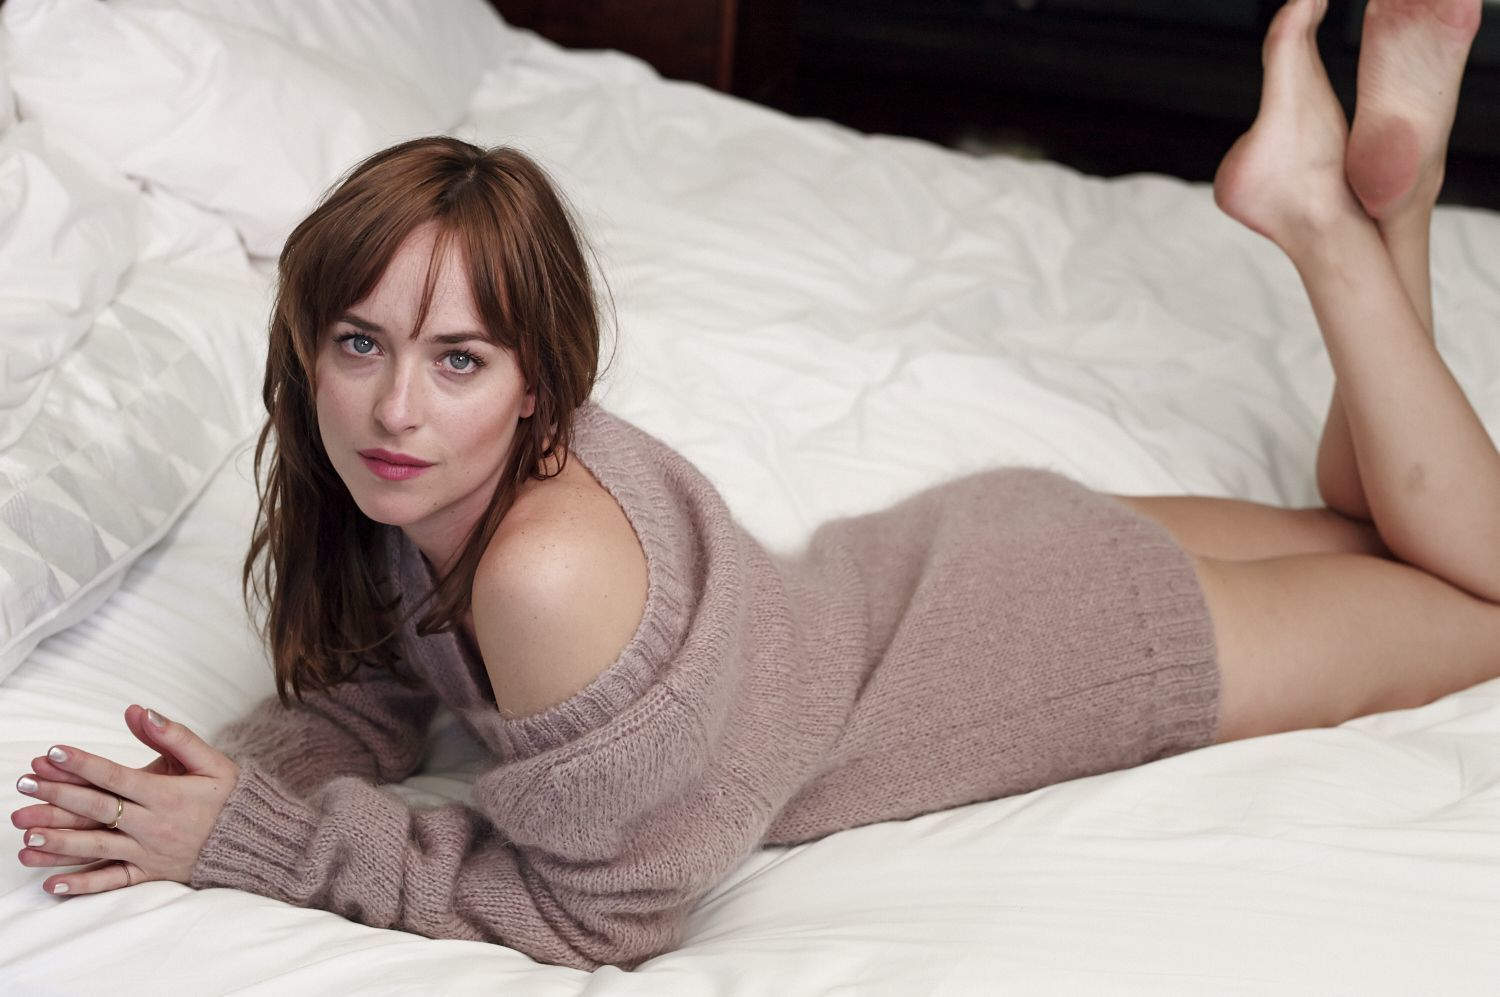 dakota johnson bare feet